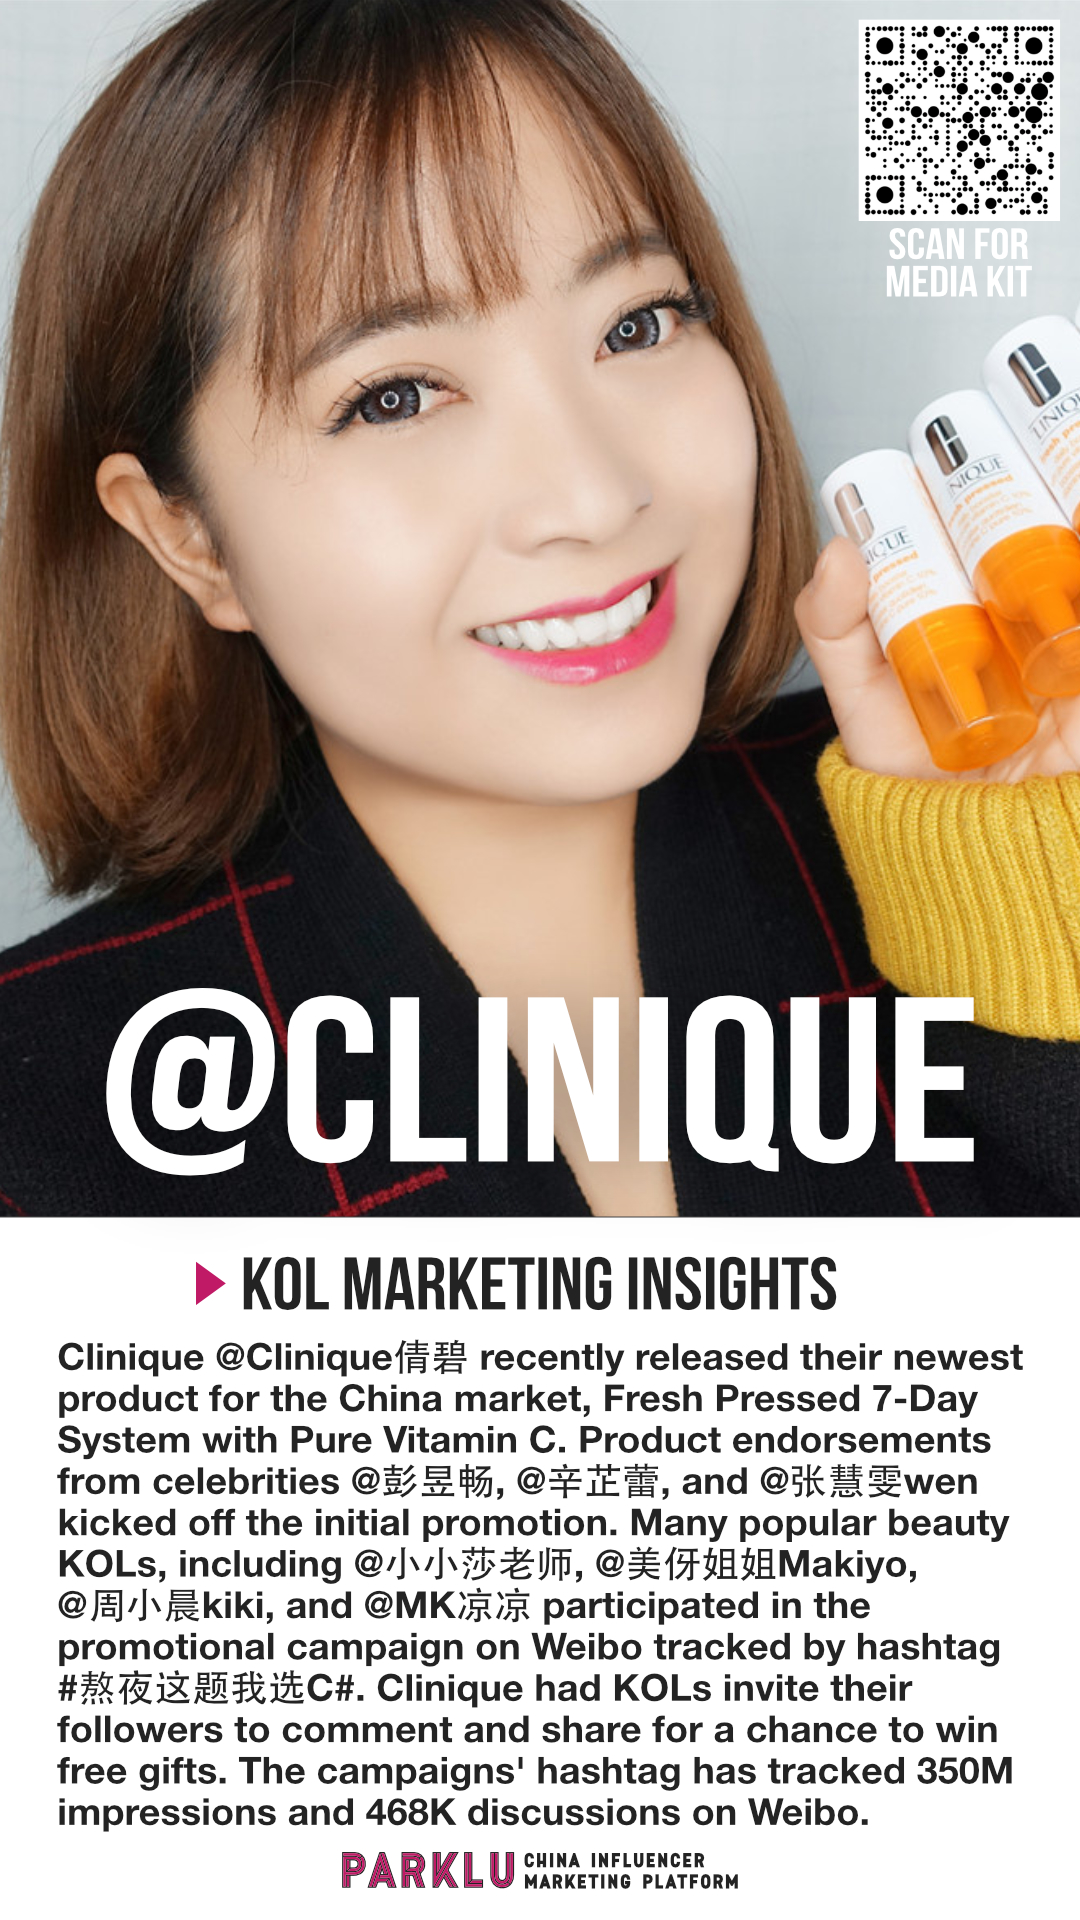 Clinique Uses Beauty Influencers for Fresh Pressed System